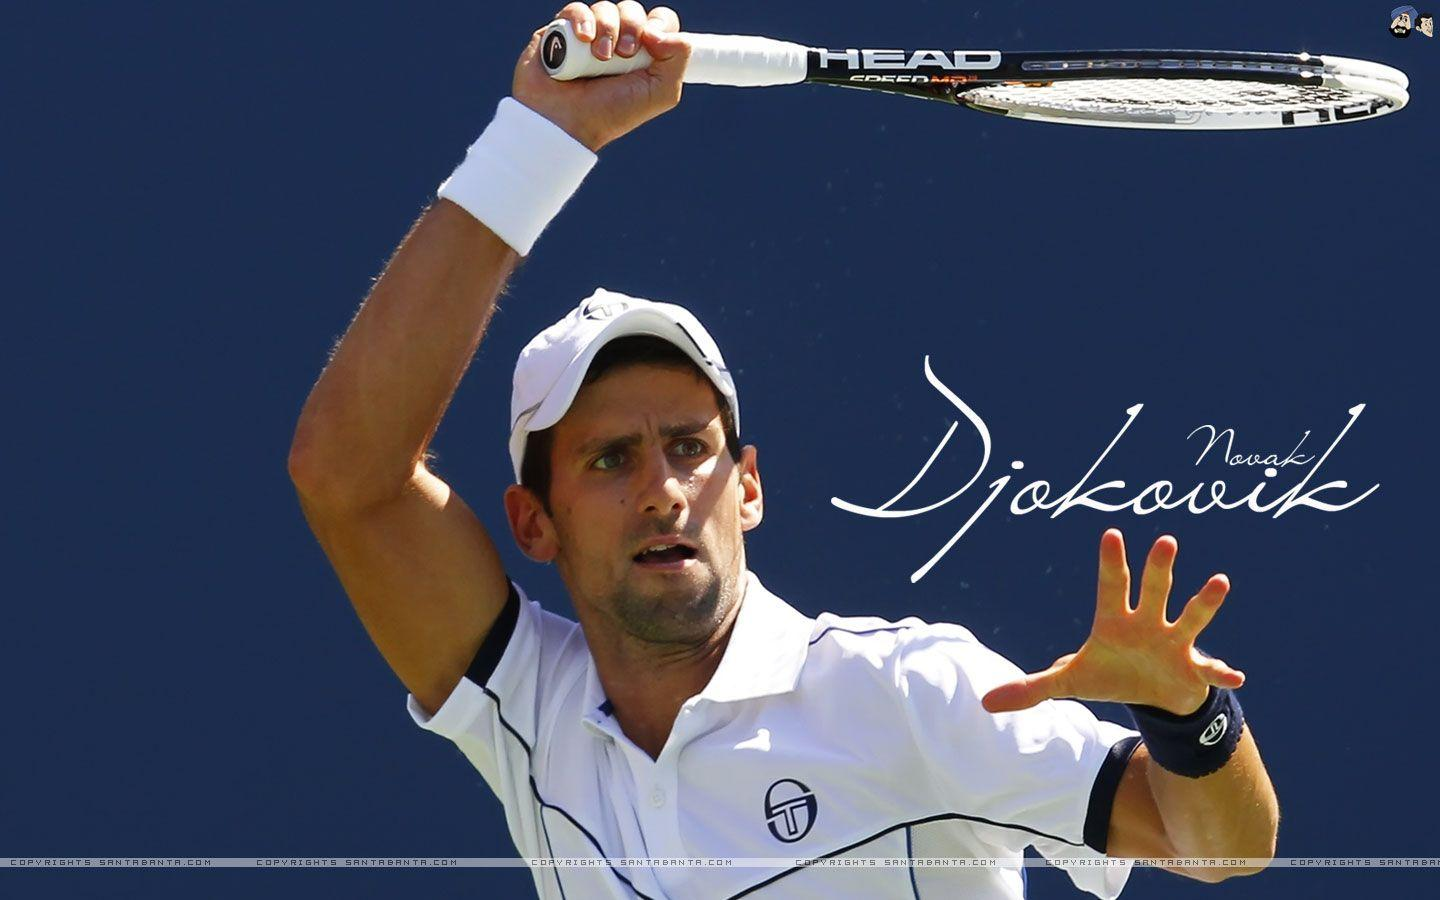 Novak Djokovic - Novak Djokovic Wallpaper (28708367) - Fanpop